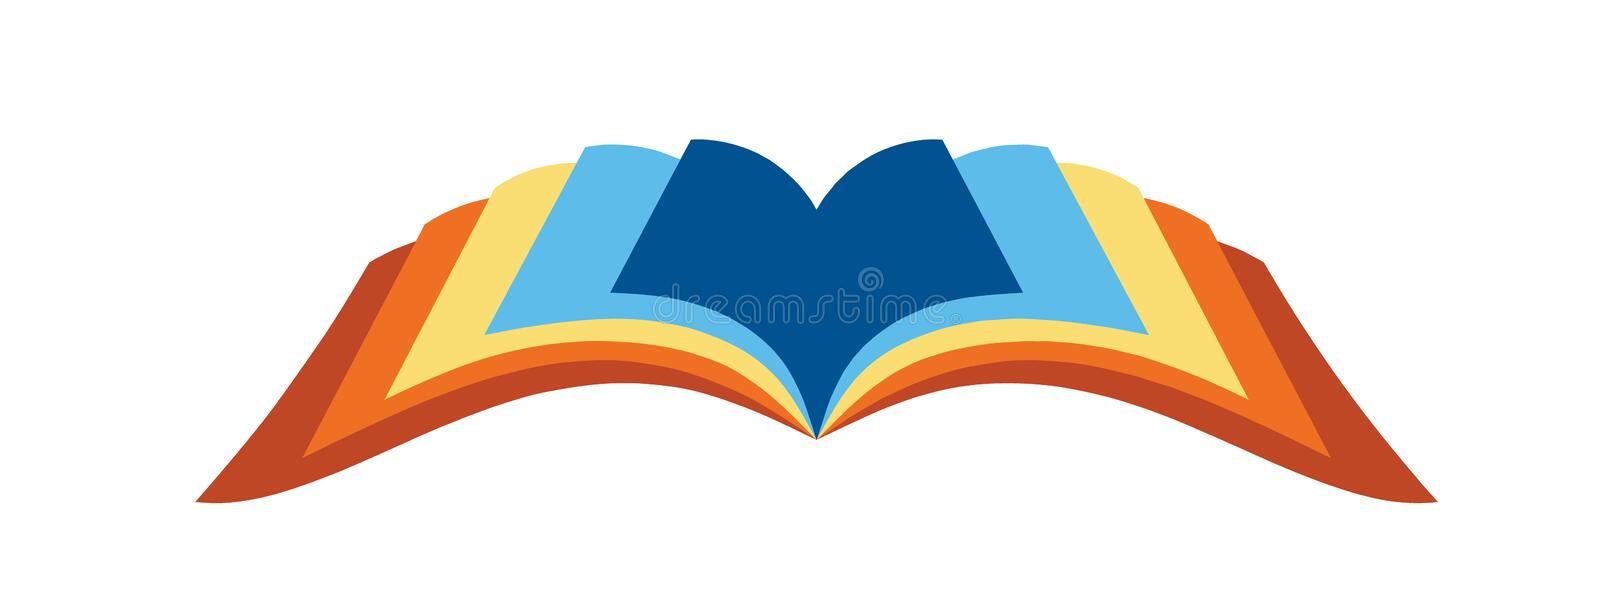 logo open book stock vector illustration of page diary 15347503 rh dreamstime com open ebook login open book logo meaning